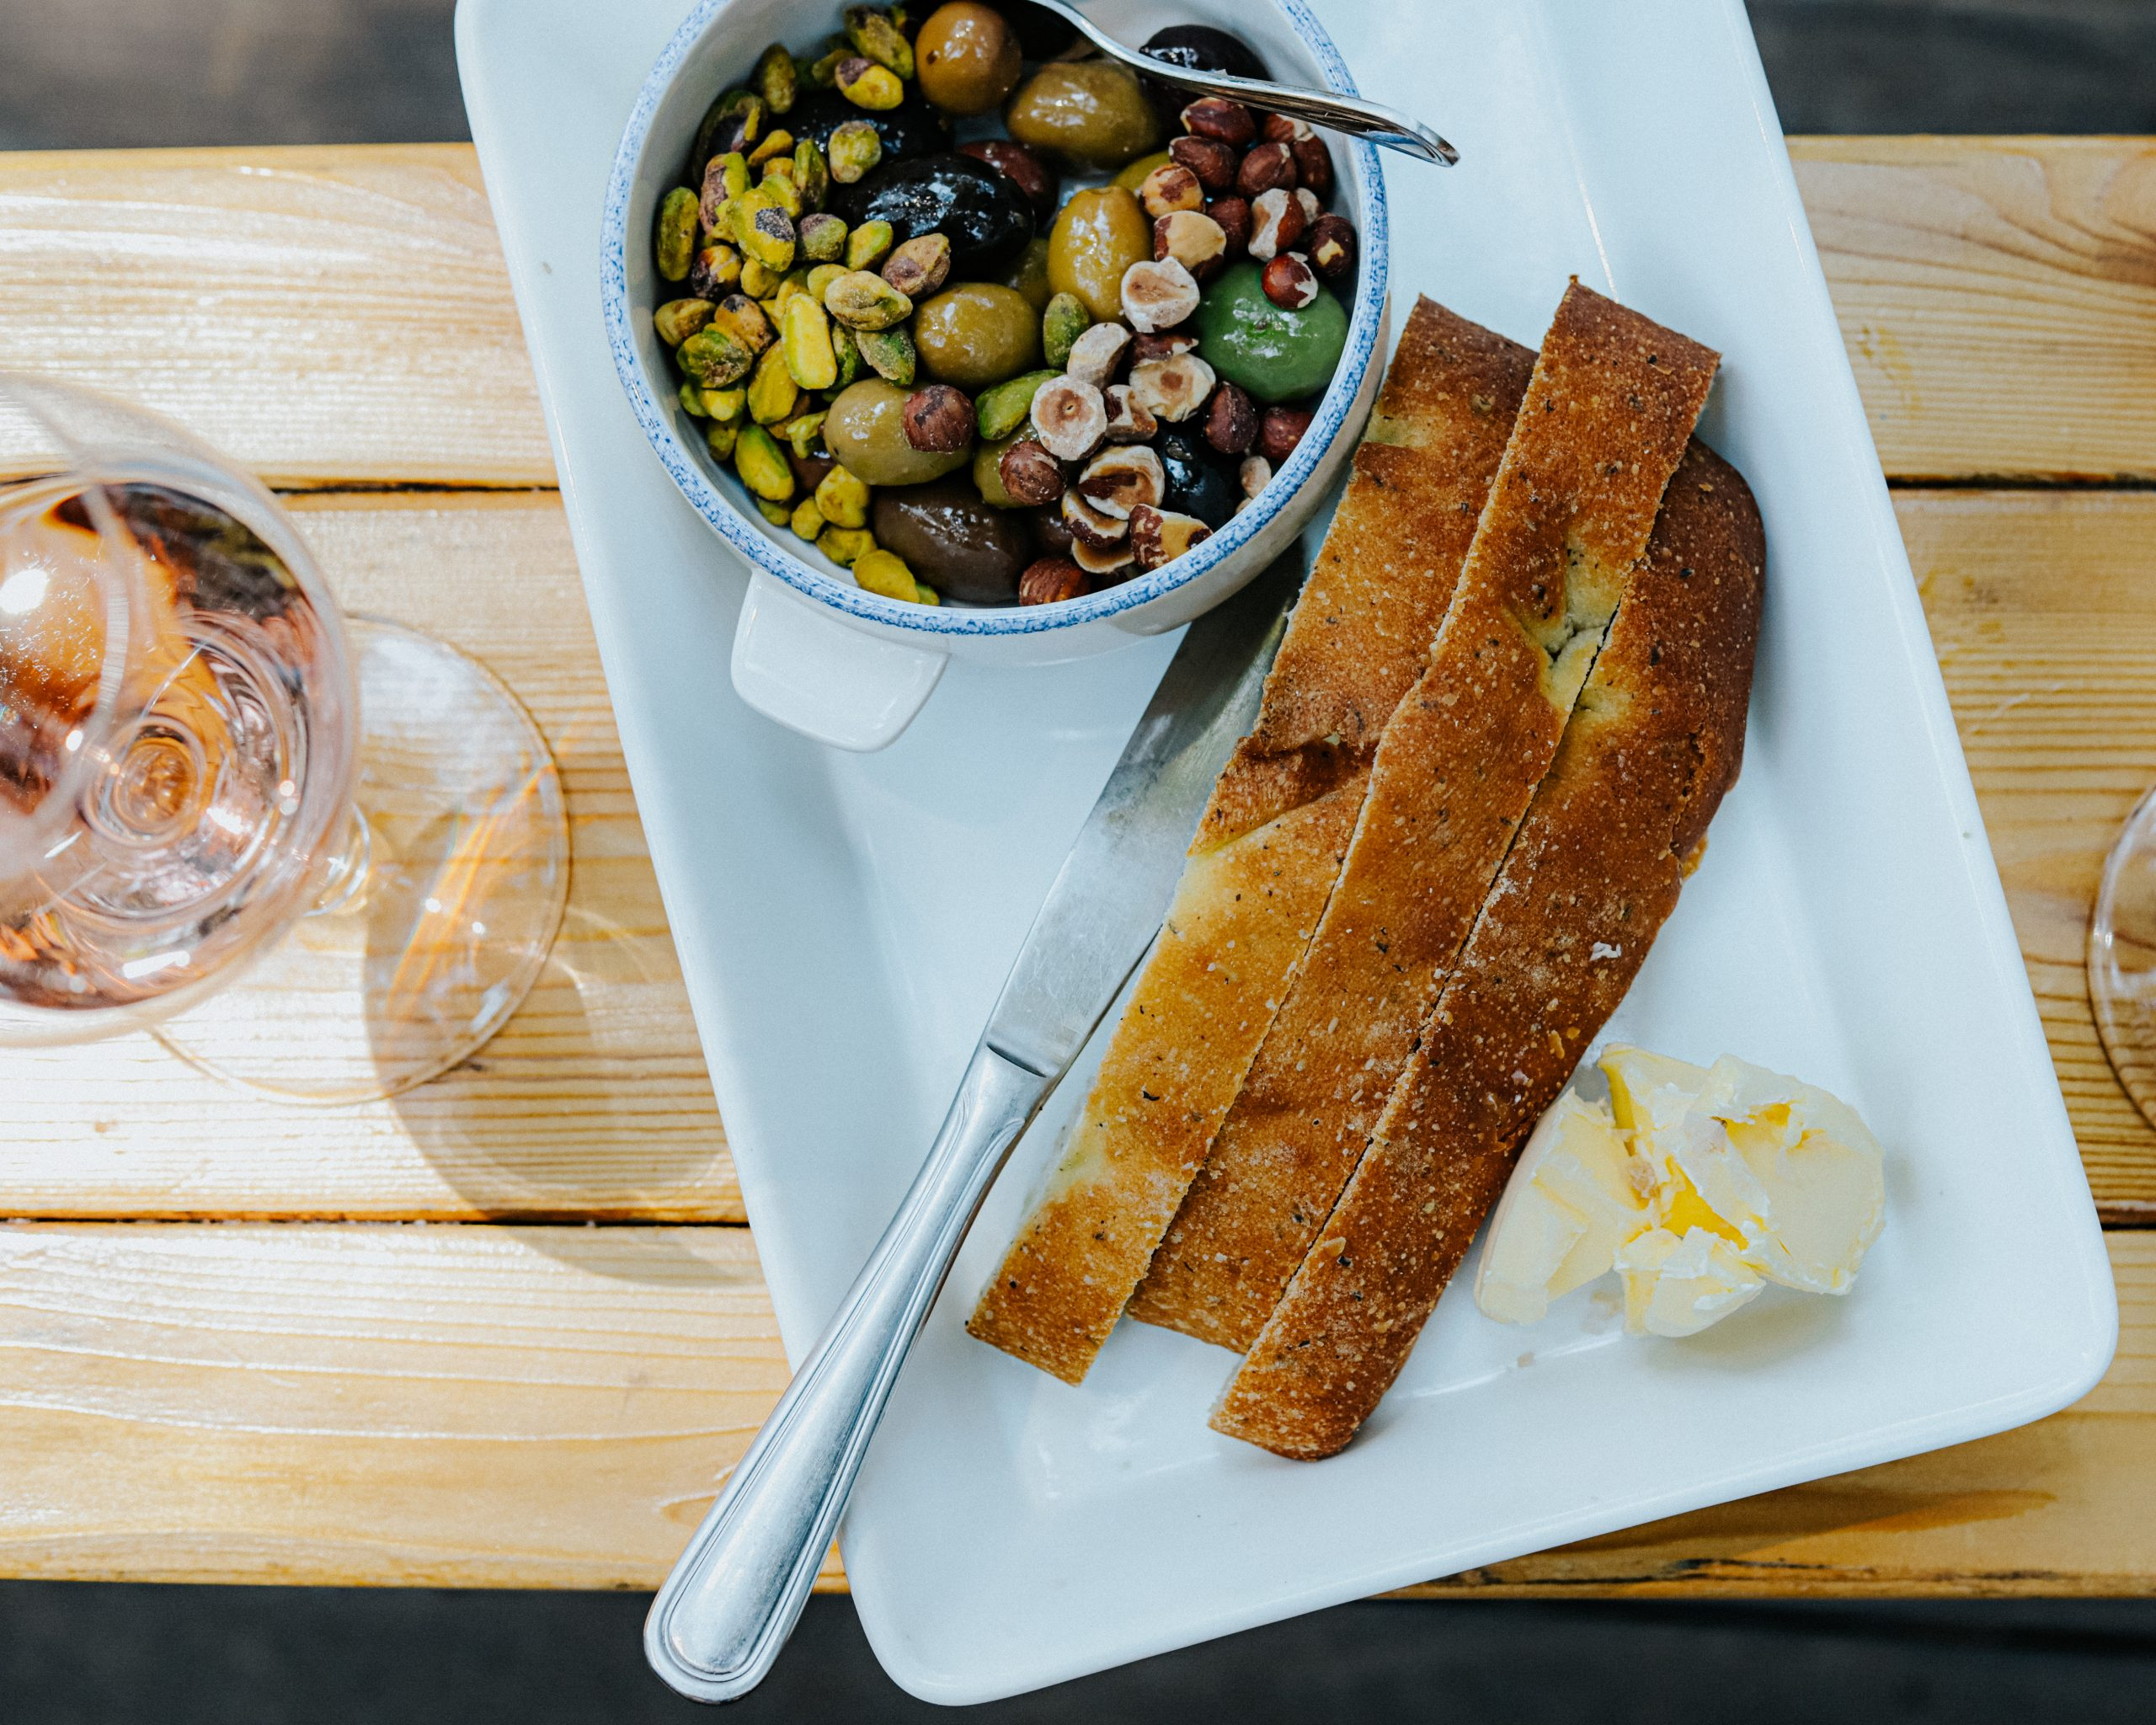 Plate of sliced focaccia next to a bowl of olives on a picnic bench